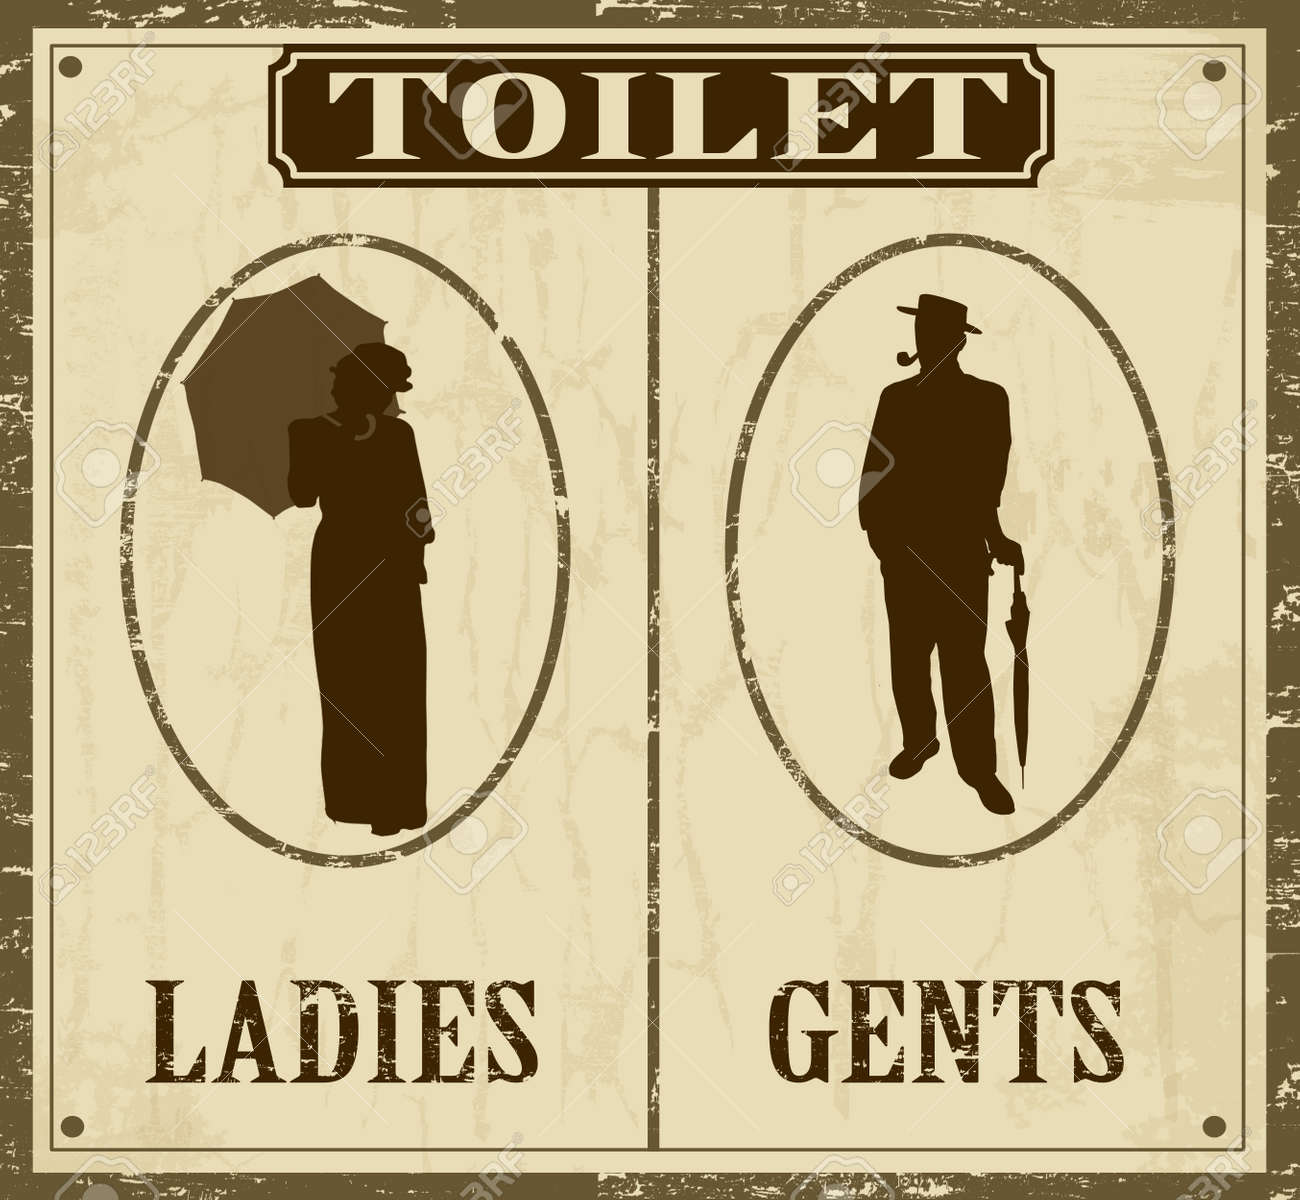 toilet clipart.html